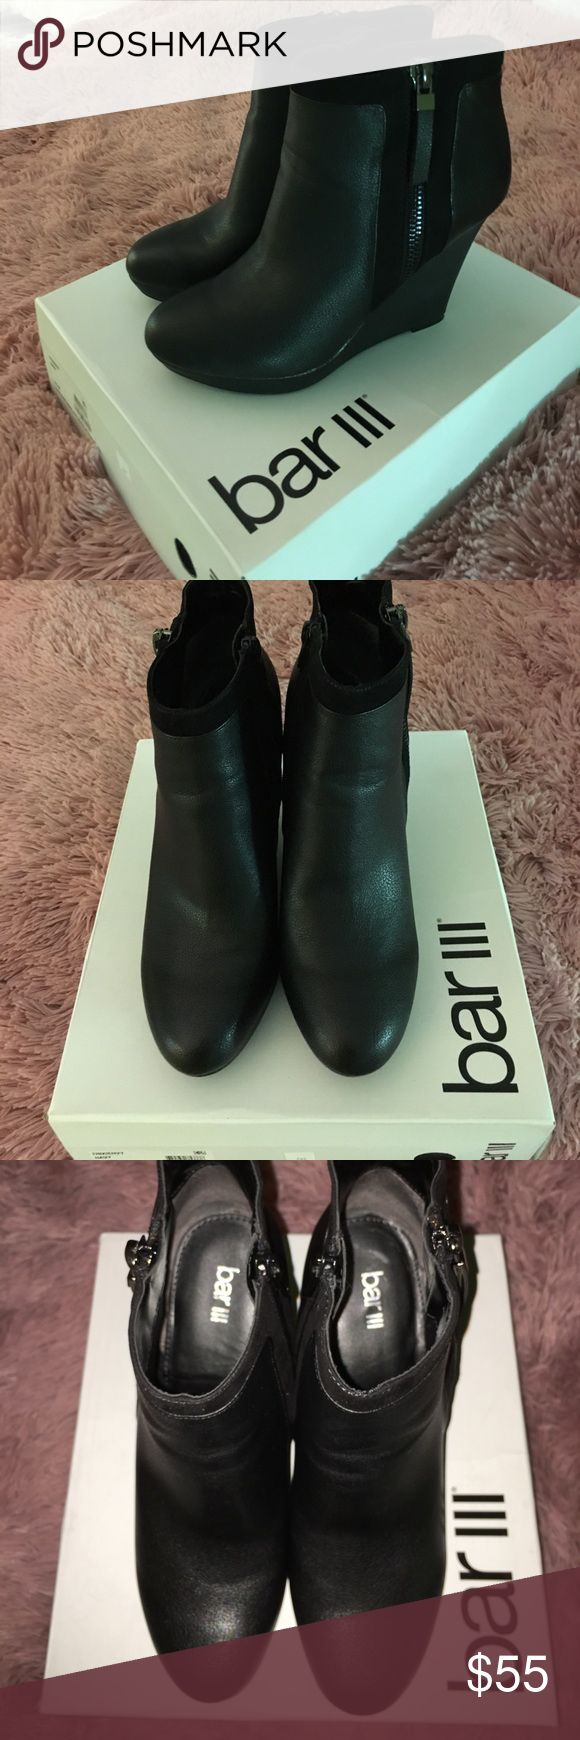 Bar lll black wedge ankle boots Brand new Size 9.5 black wedge zip up boots, bar lll Bar III Shoes Ankle Boots & Booties